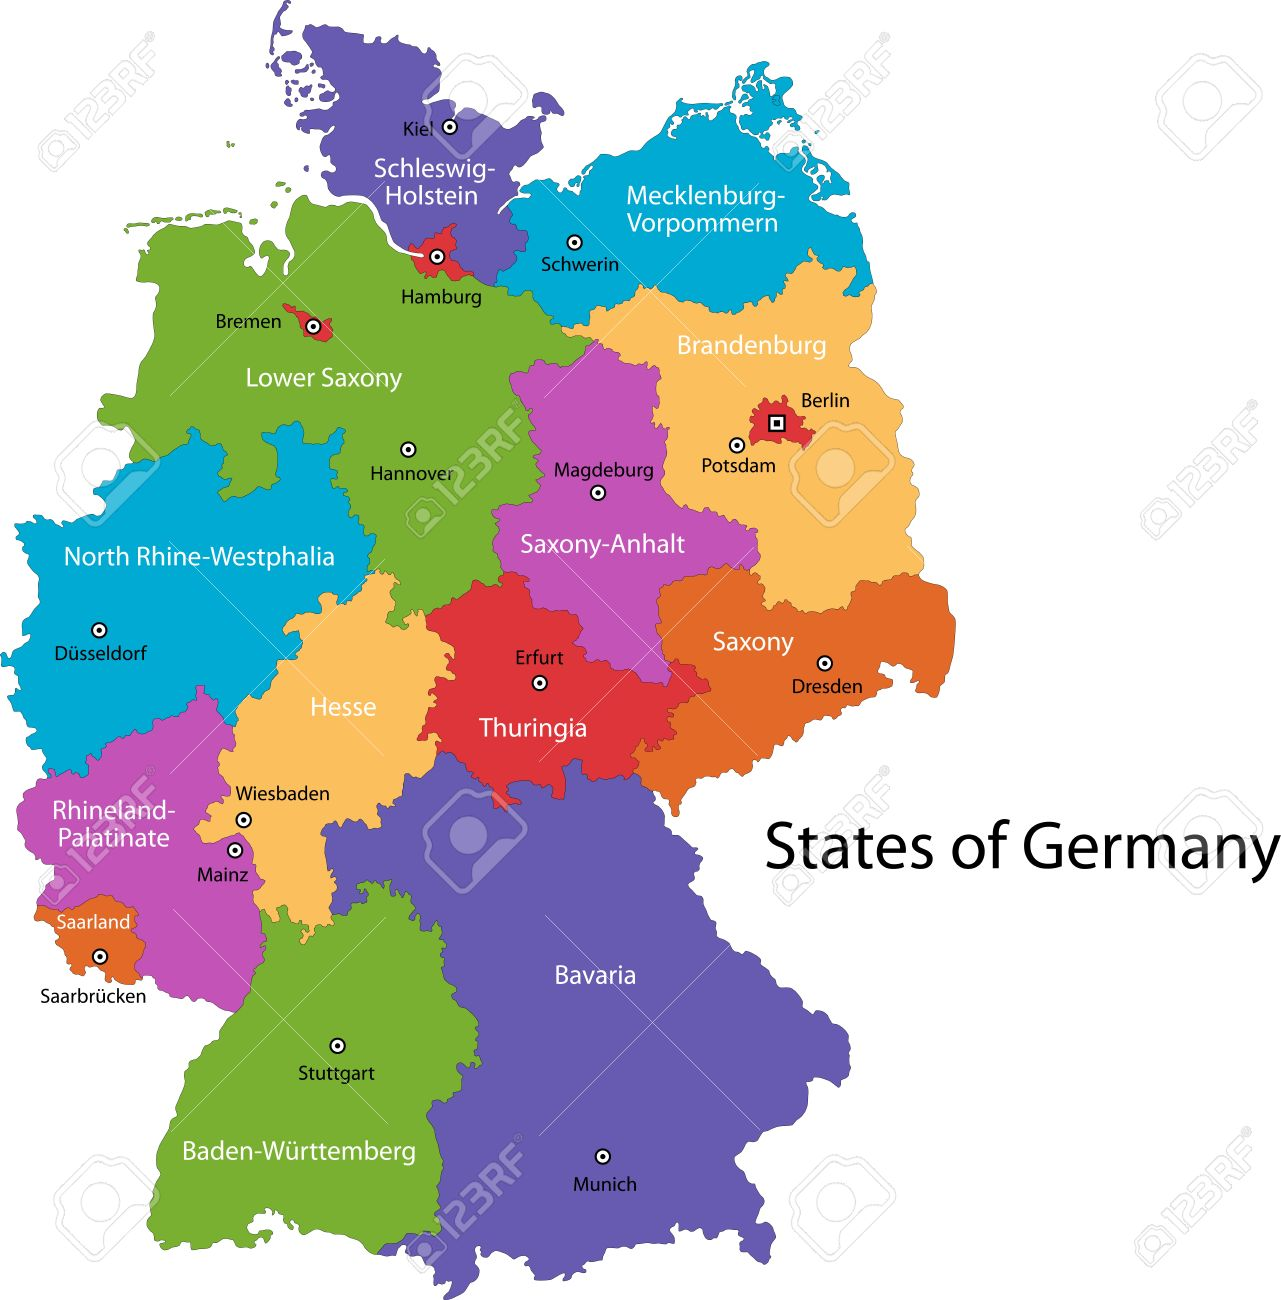 Regions Of Germany Map.Colorful Germany Map With Regions And Main Cities